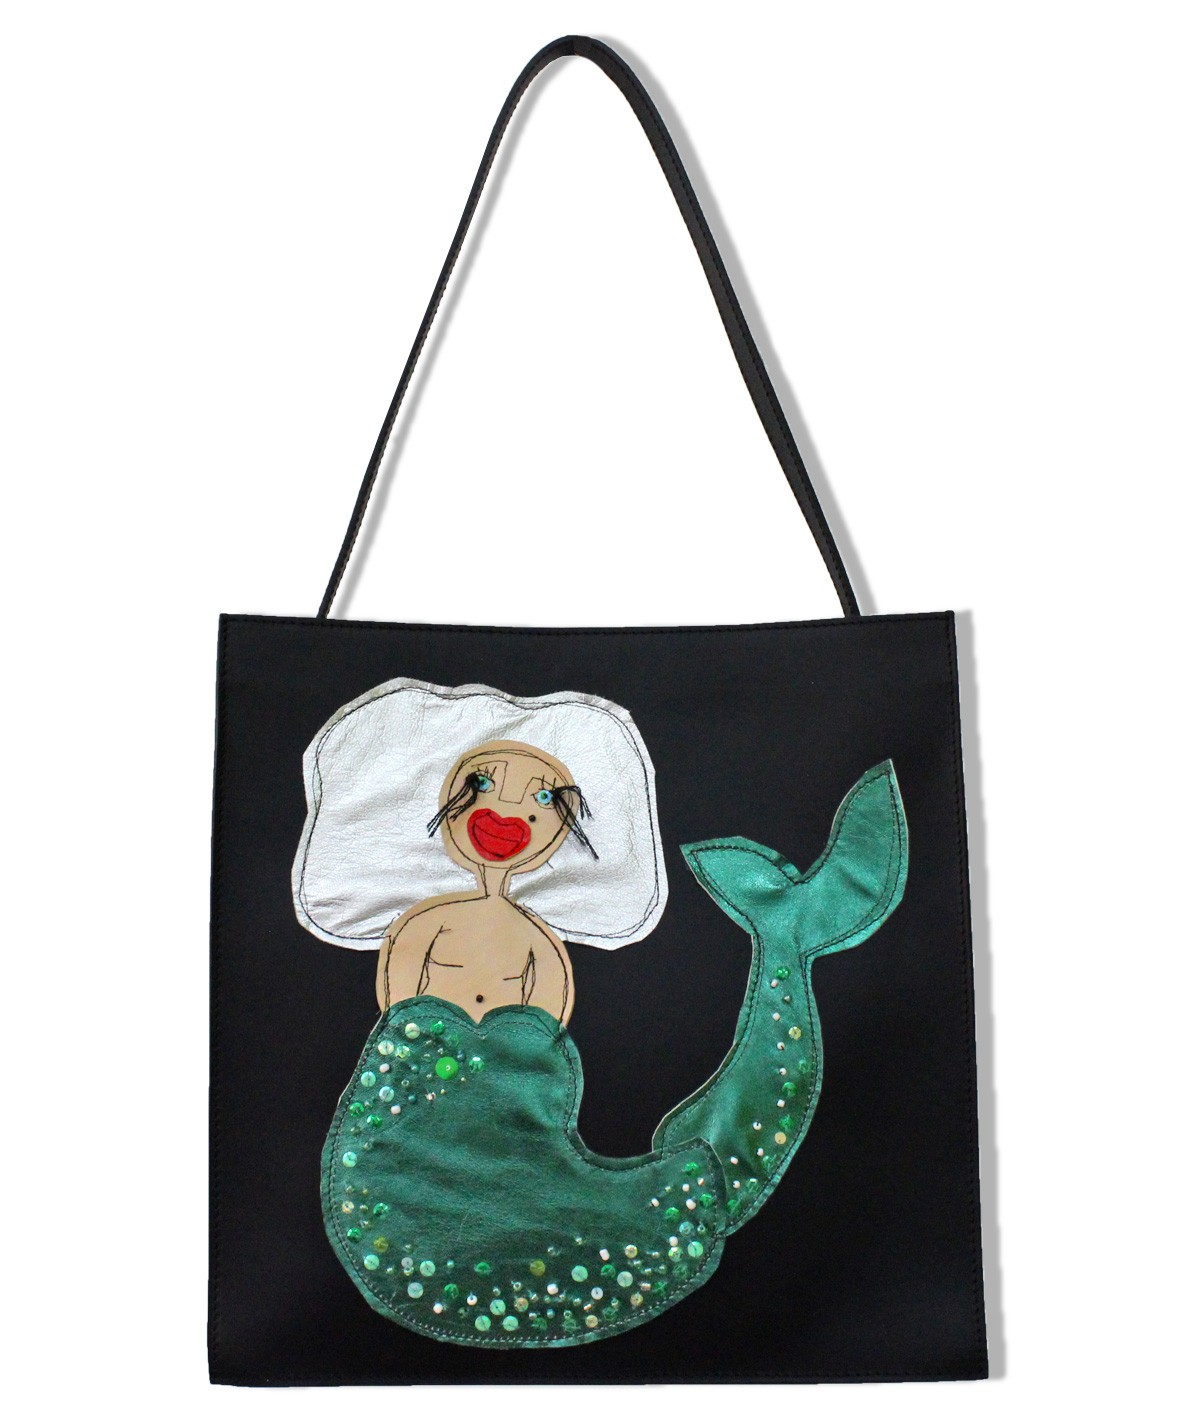 Mermaid - maxi leather bag